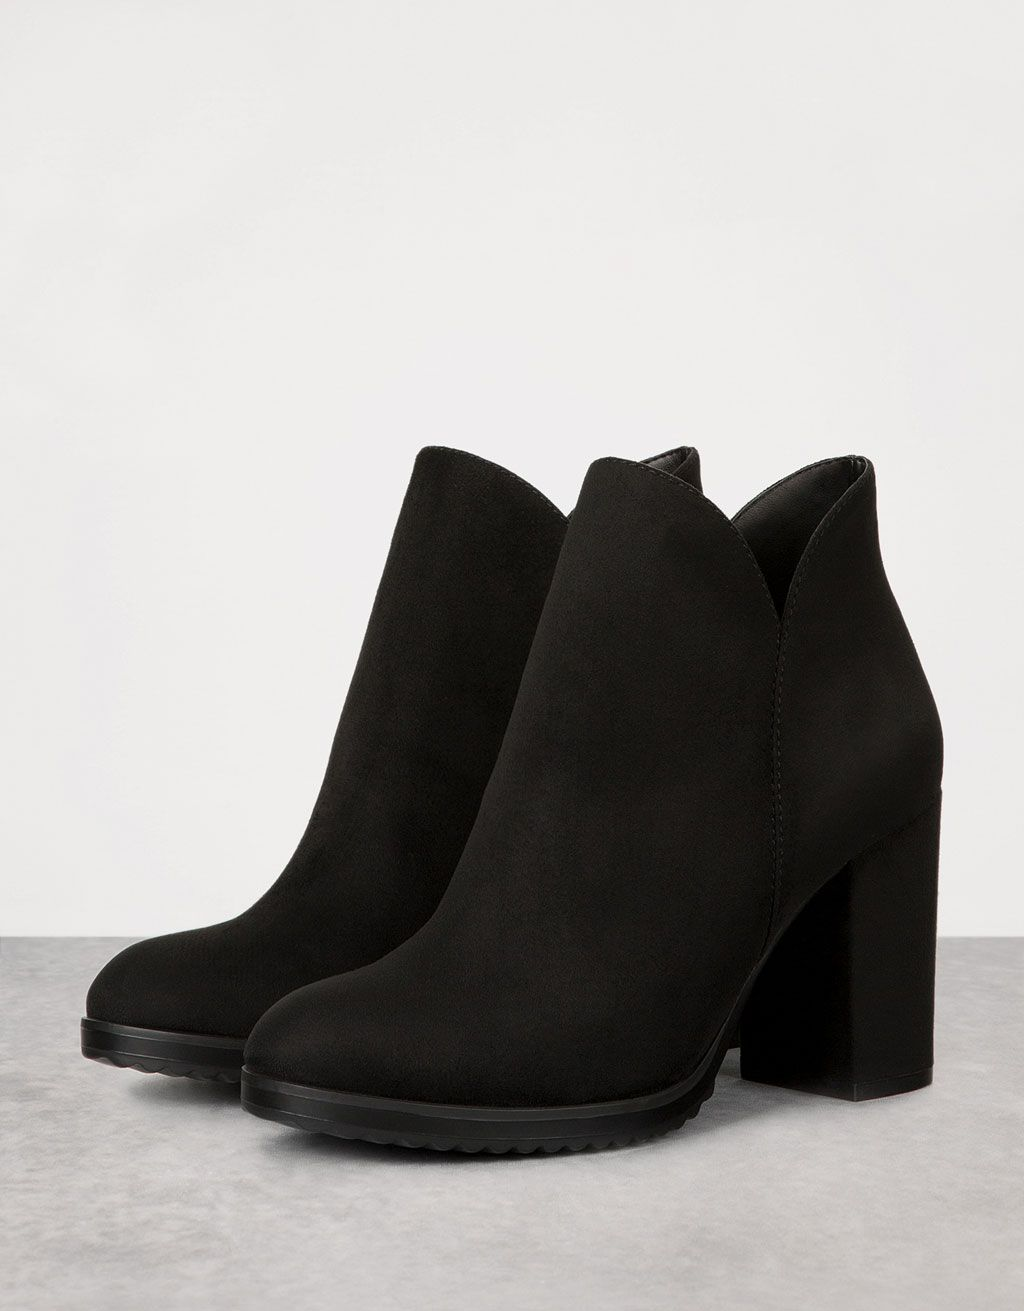 fa6f7a49c5d9 Ankle boots with block mid-heel en 2019 | Shoes | Bershka zapatos ...